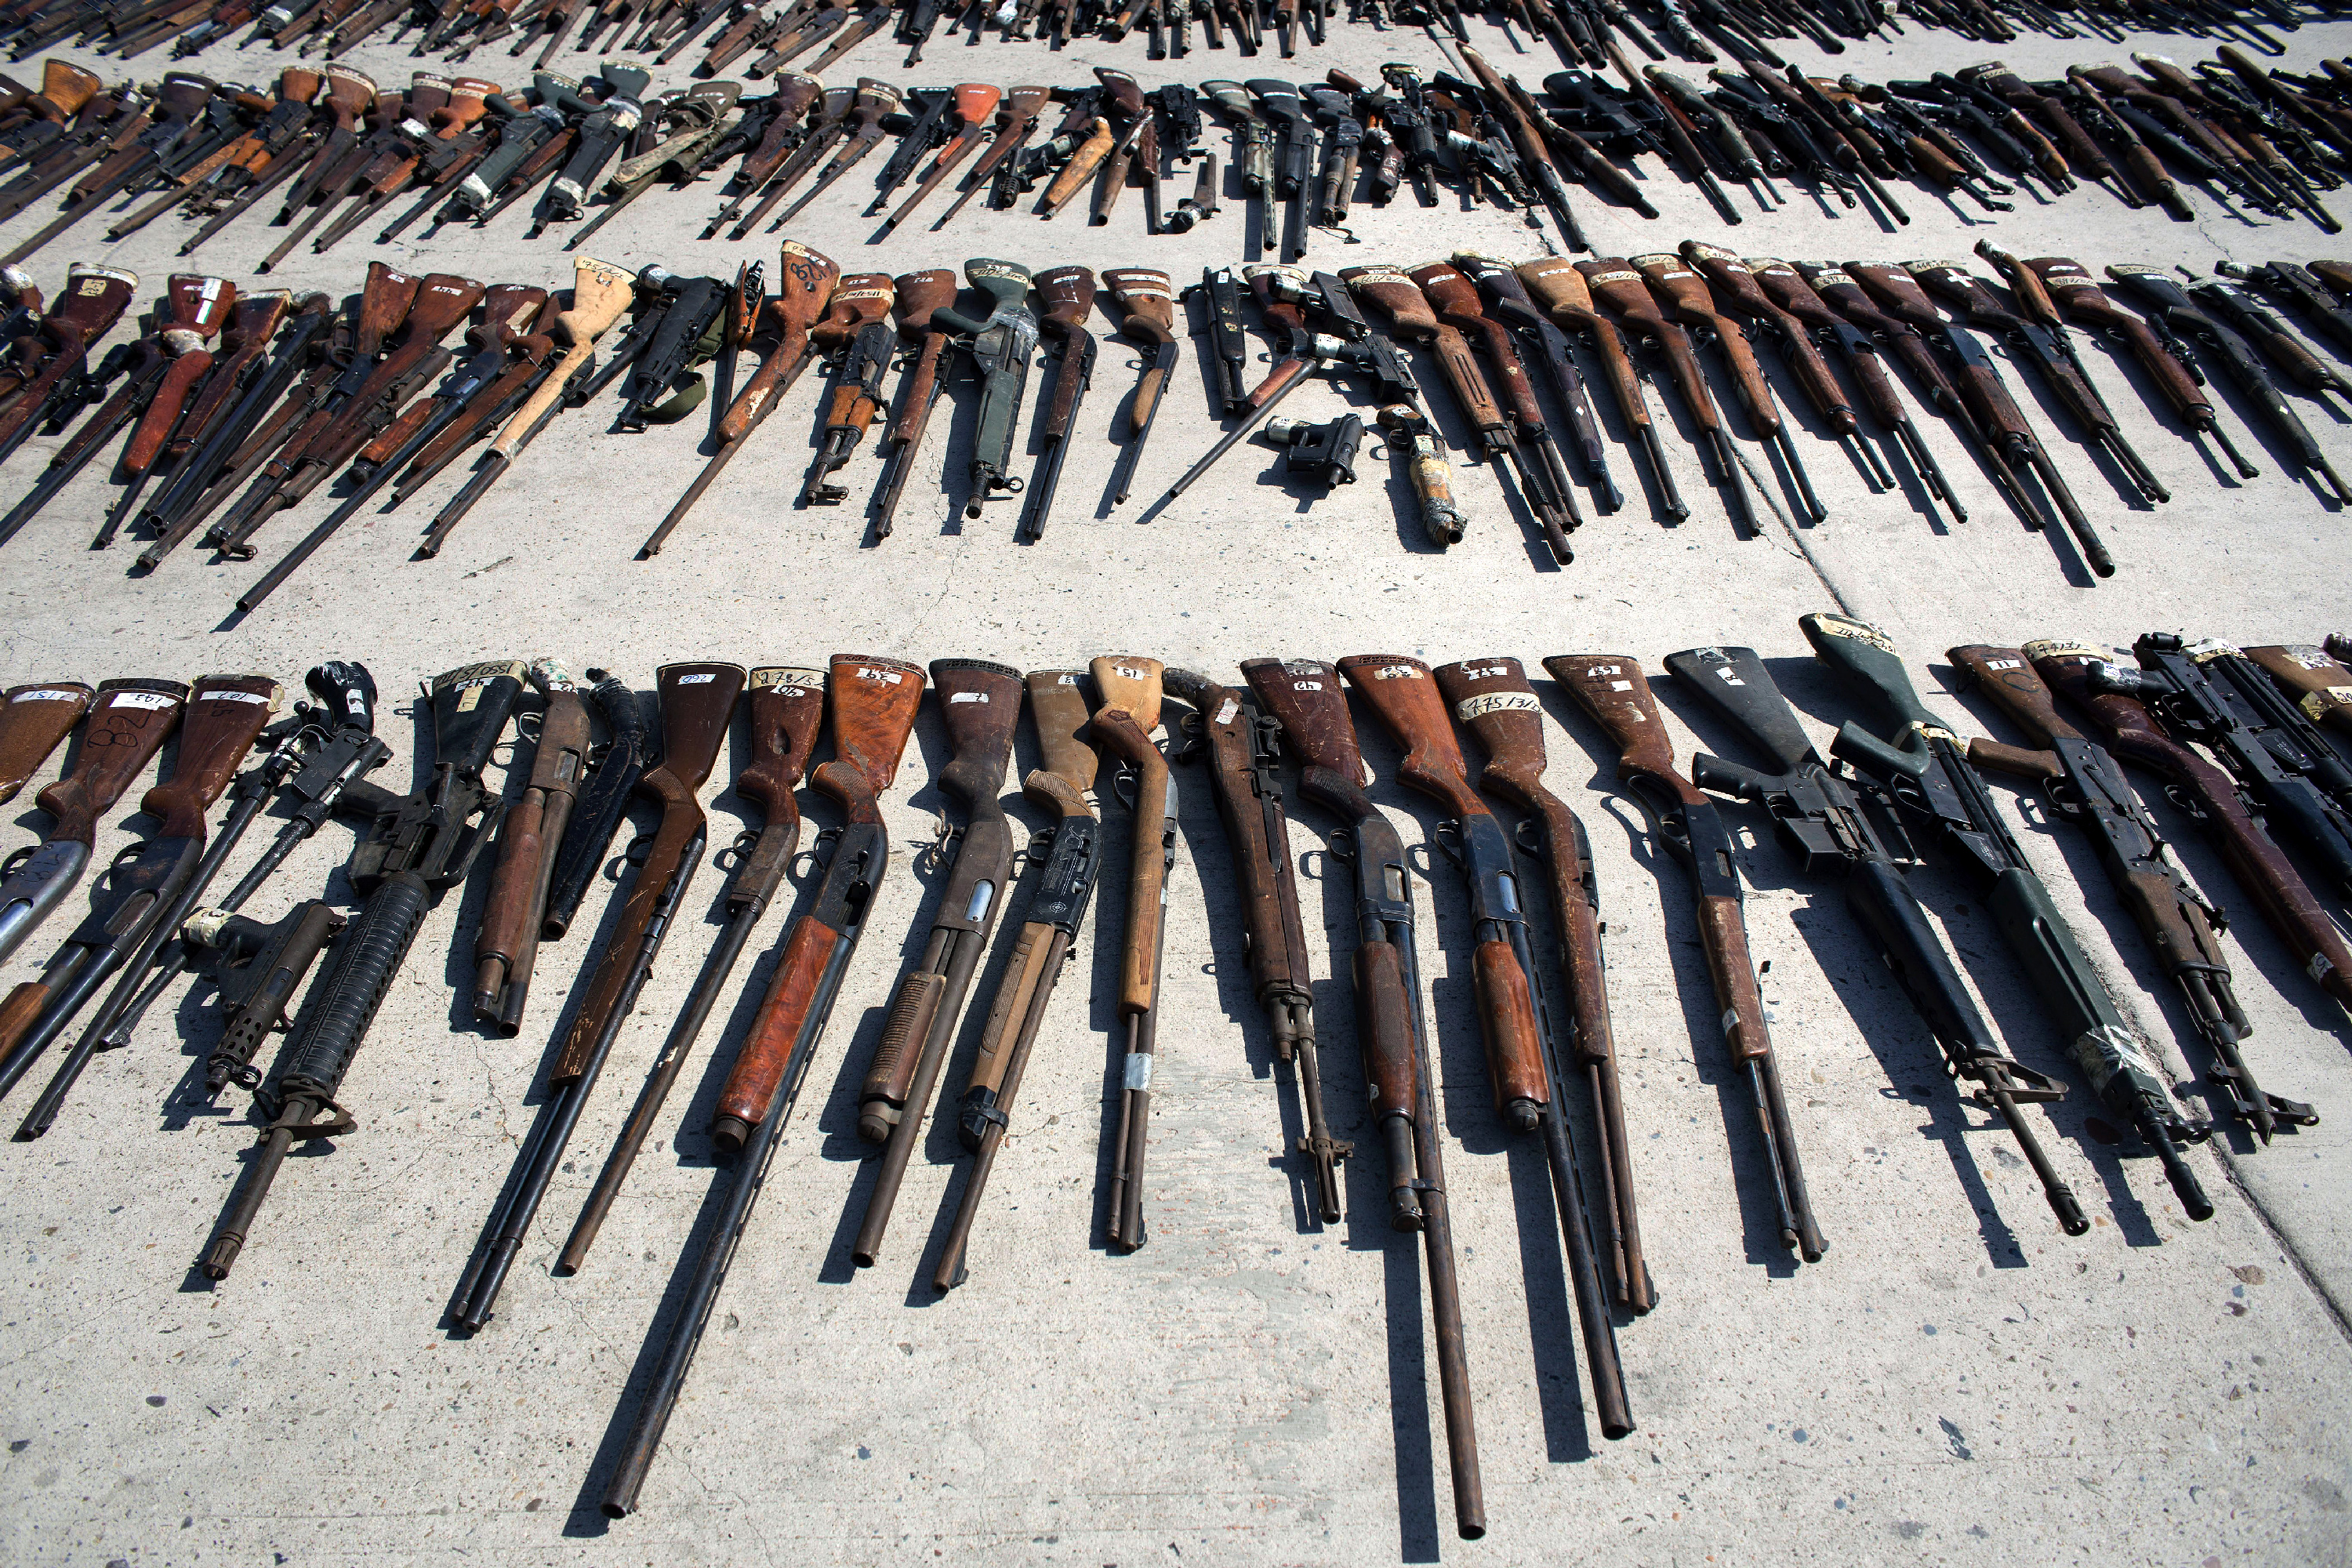 How U S  Guns Sold to Mexico End Up With Security Forces Accused of